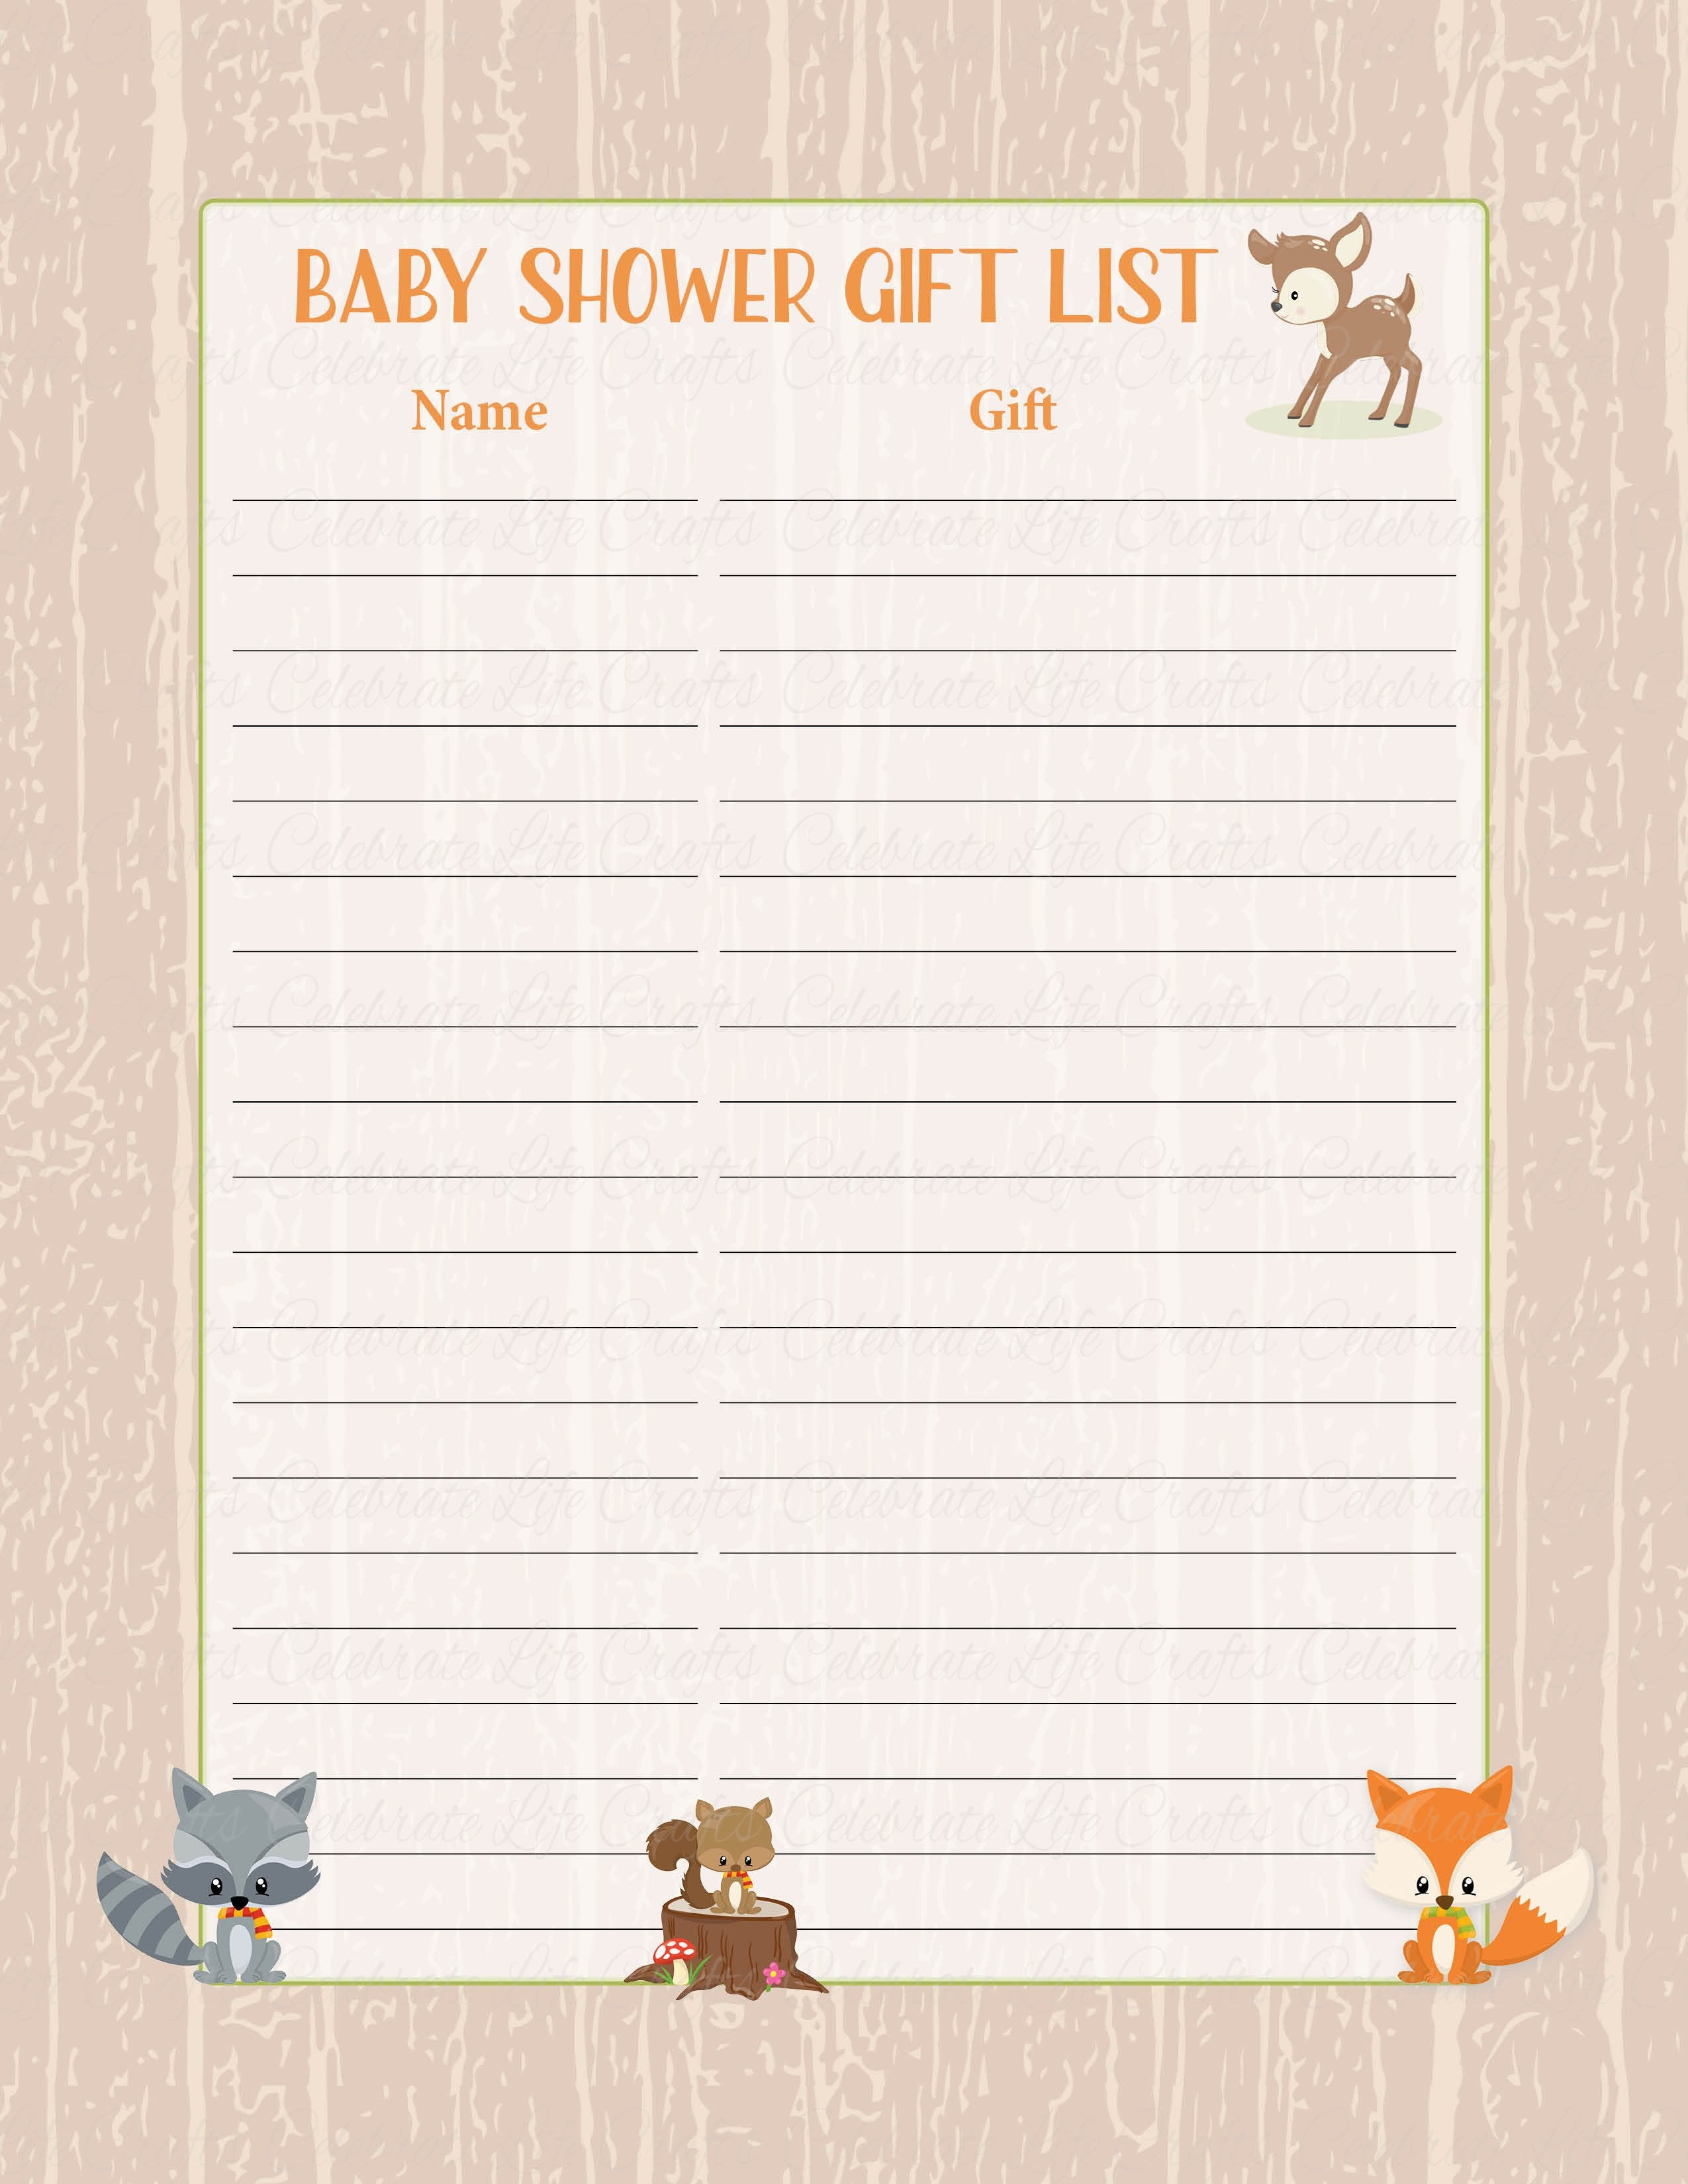 picture relating to Baby Shower Gift List Printable called Kid Shower Present Checklist Mounted - PRINTABLE Down load - Forest Pets Woodland Child Shower Decorations - B18002